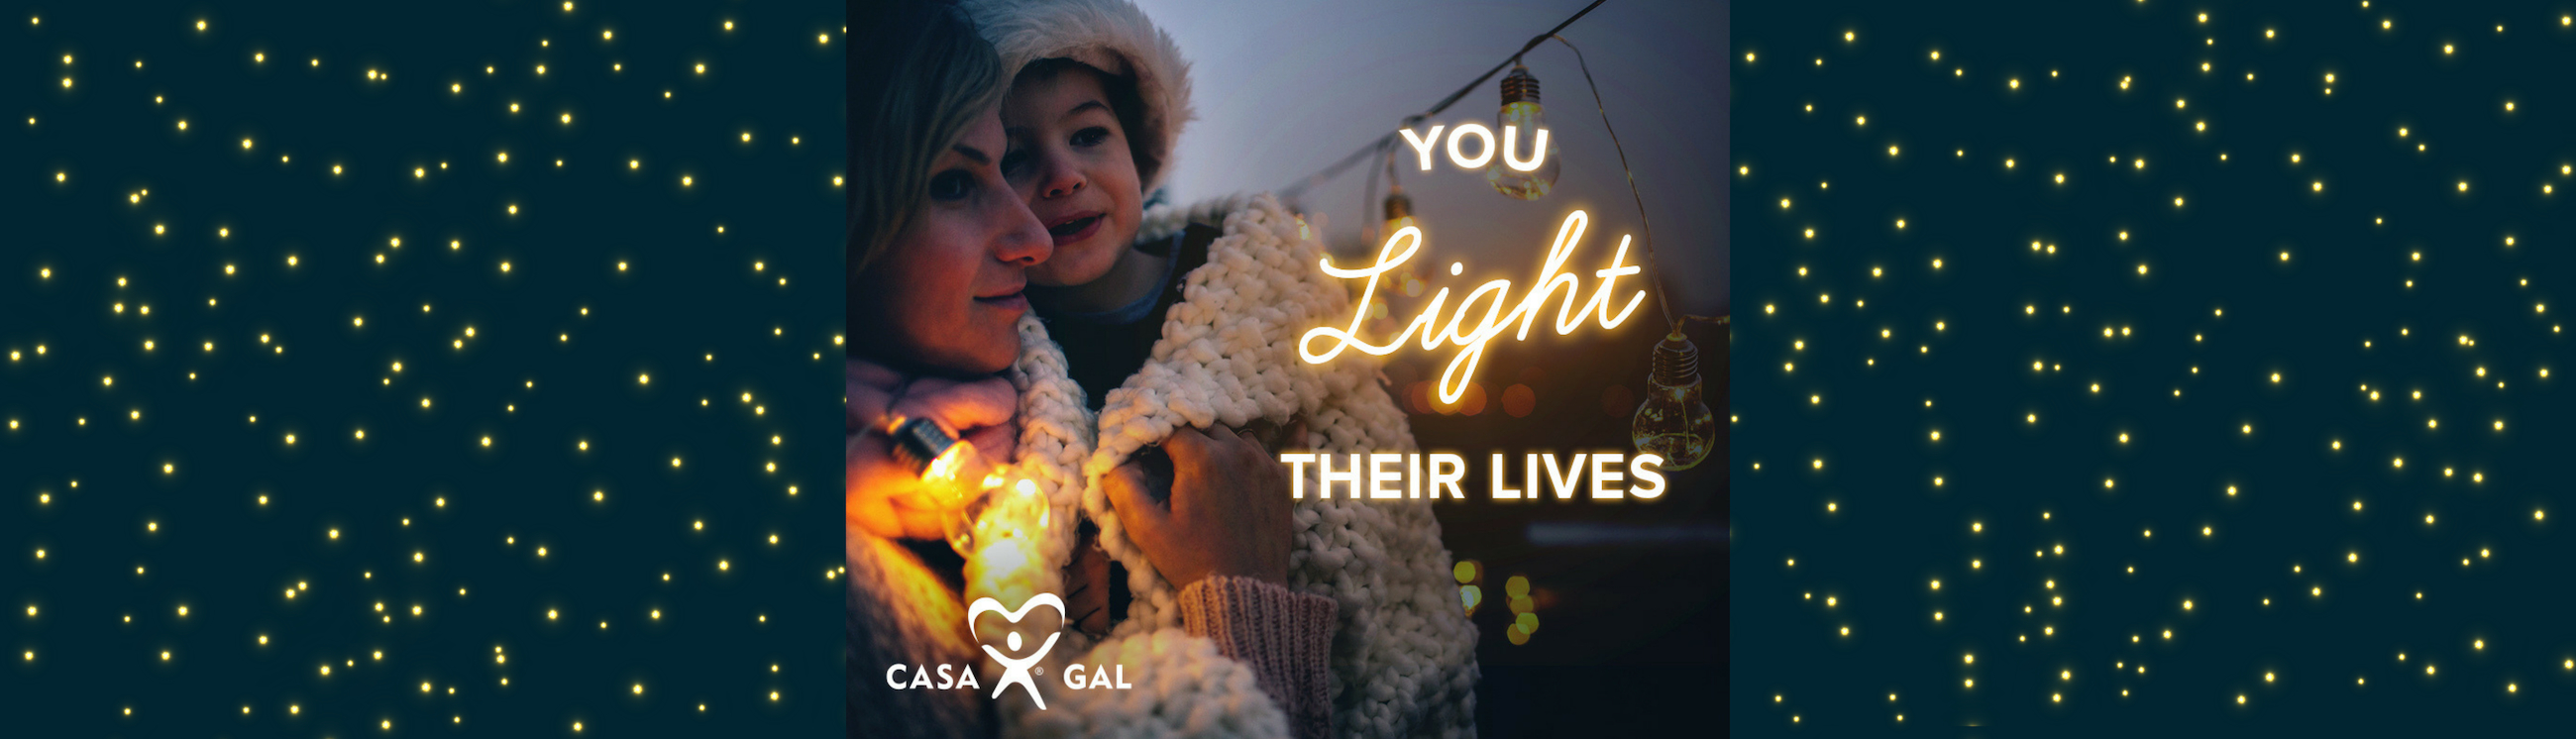 Website Banner You Light Their Lives